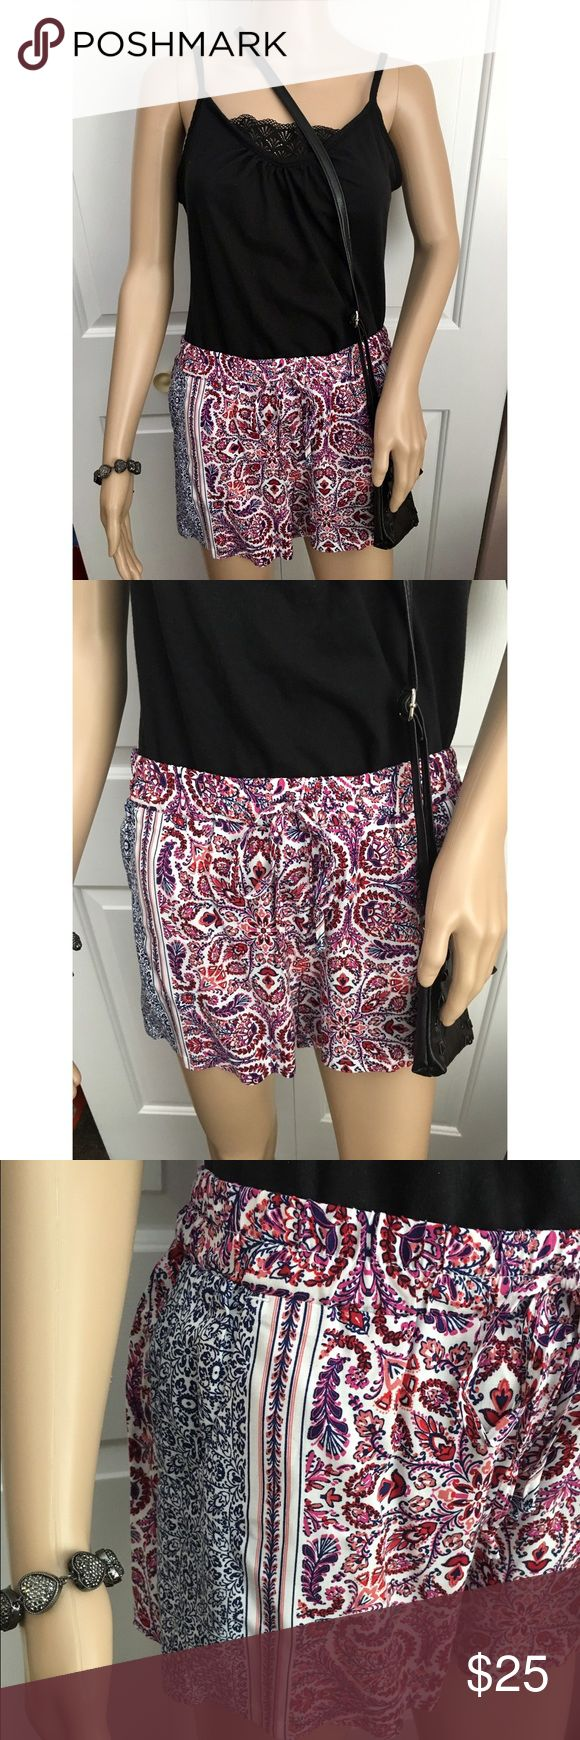 "NWT BeBop Paisley Print Boho Shorts! - Jr. Small Never worn, purchased at a department store called ""Peebles."" 100% rayon, super comfy and flowy material! Perfect for the beach. Smoke and pet free home. No trades. ❤️🎀⭐️ BeBop Shorts"